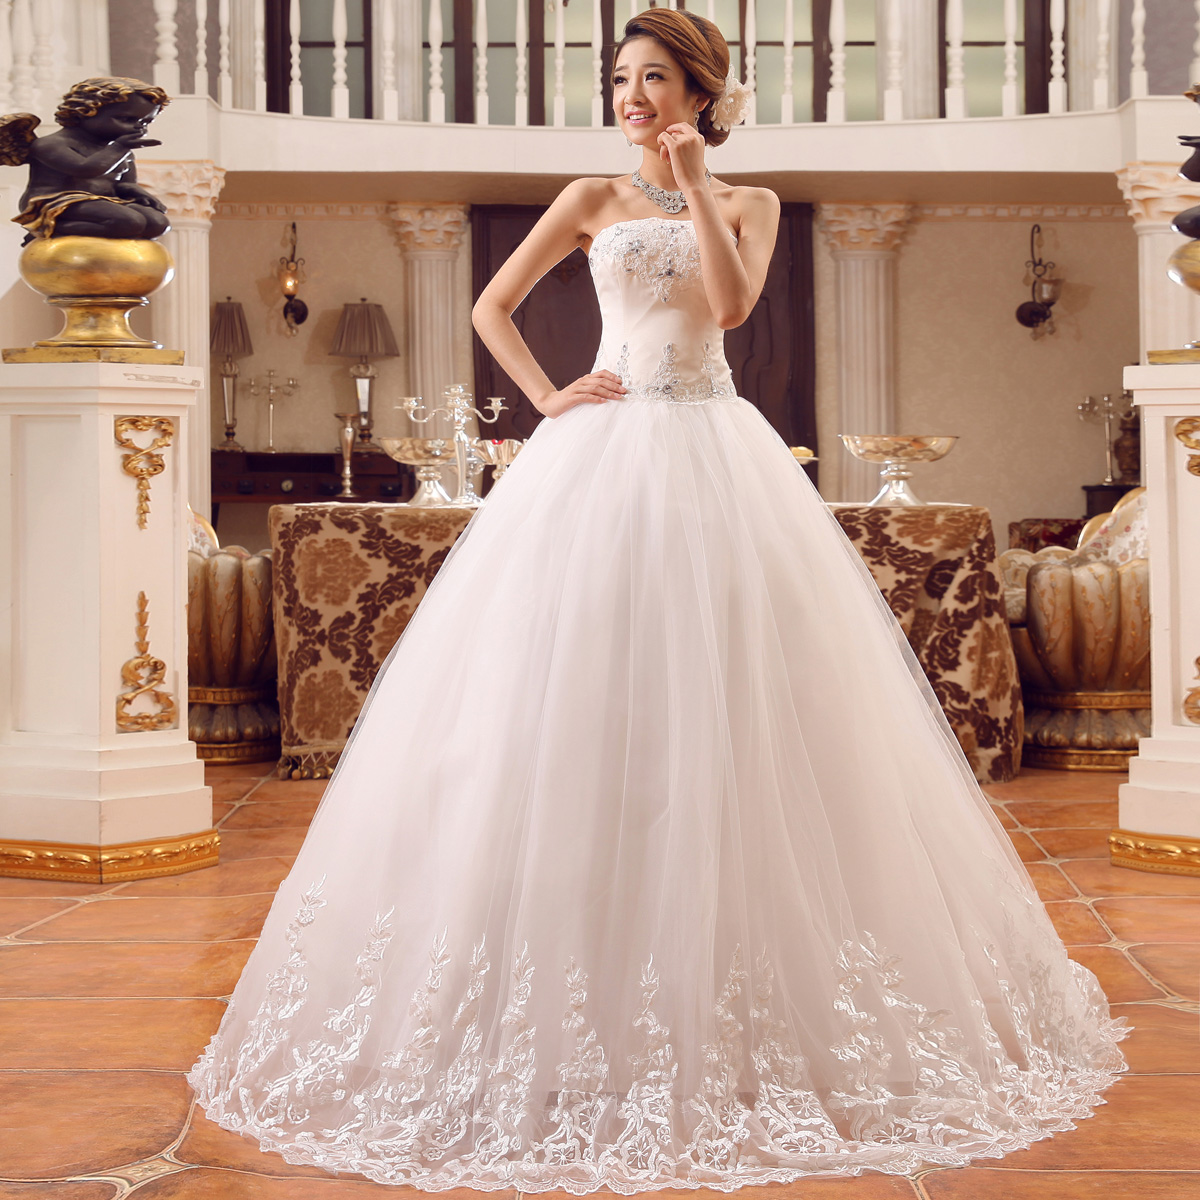 Luxury Embroidery Beading Wedding Dress White Fl Lace Bandage Gowns Strapless Off The Shoulder Bridal Trourok In Dresses From